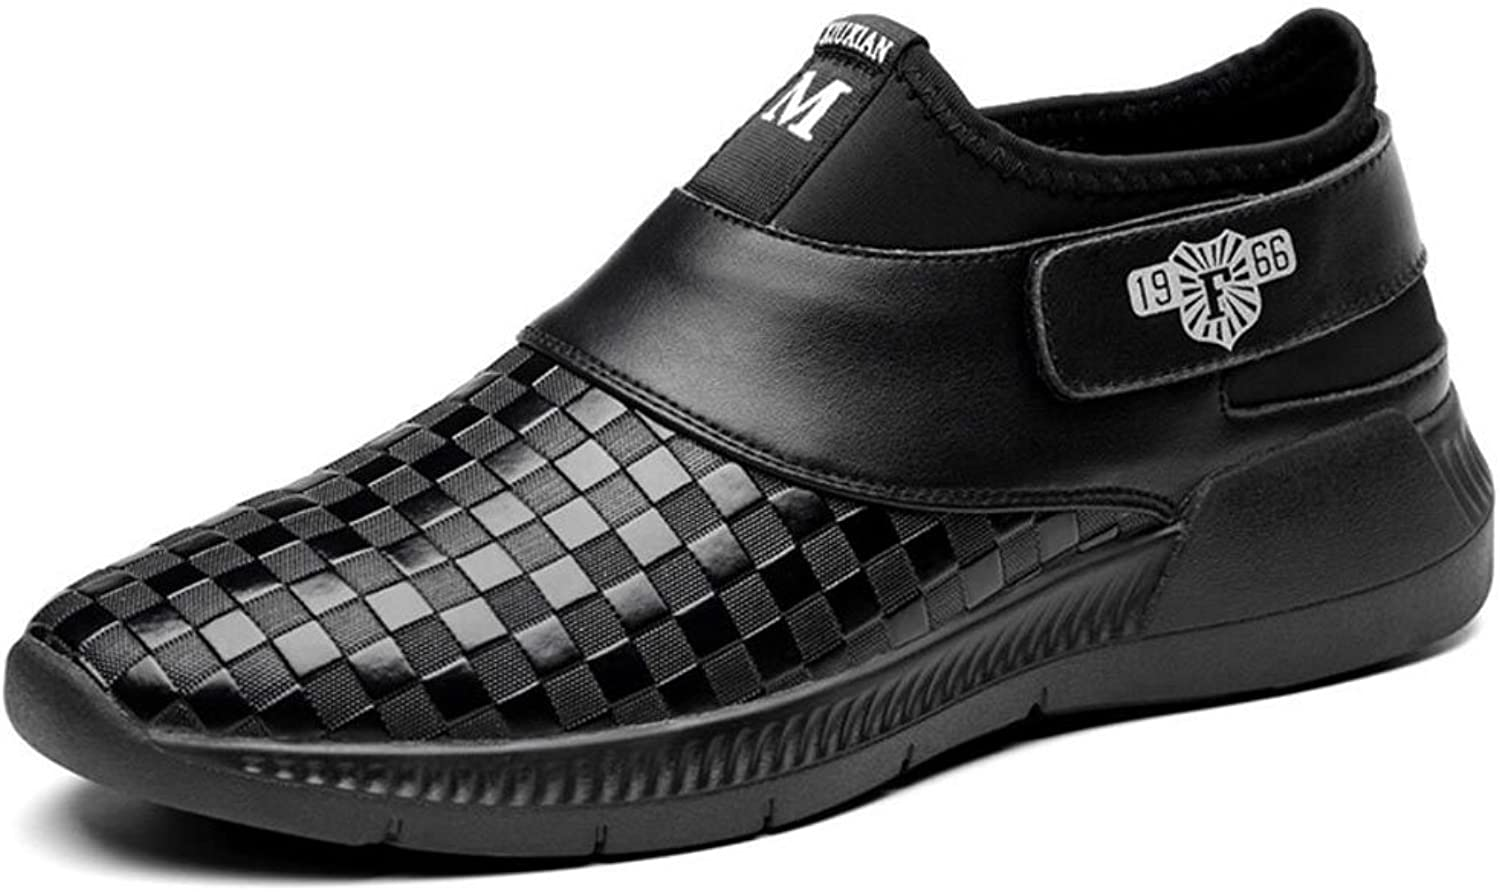 Mens Leather Casual Spring Fall Winter Slip On & Loafers Driving shoes Business Work For Casual Office & Career Outdoor Large Size 38-44 (color   Black, Size   44)